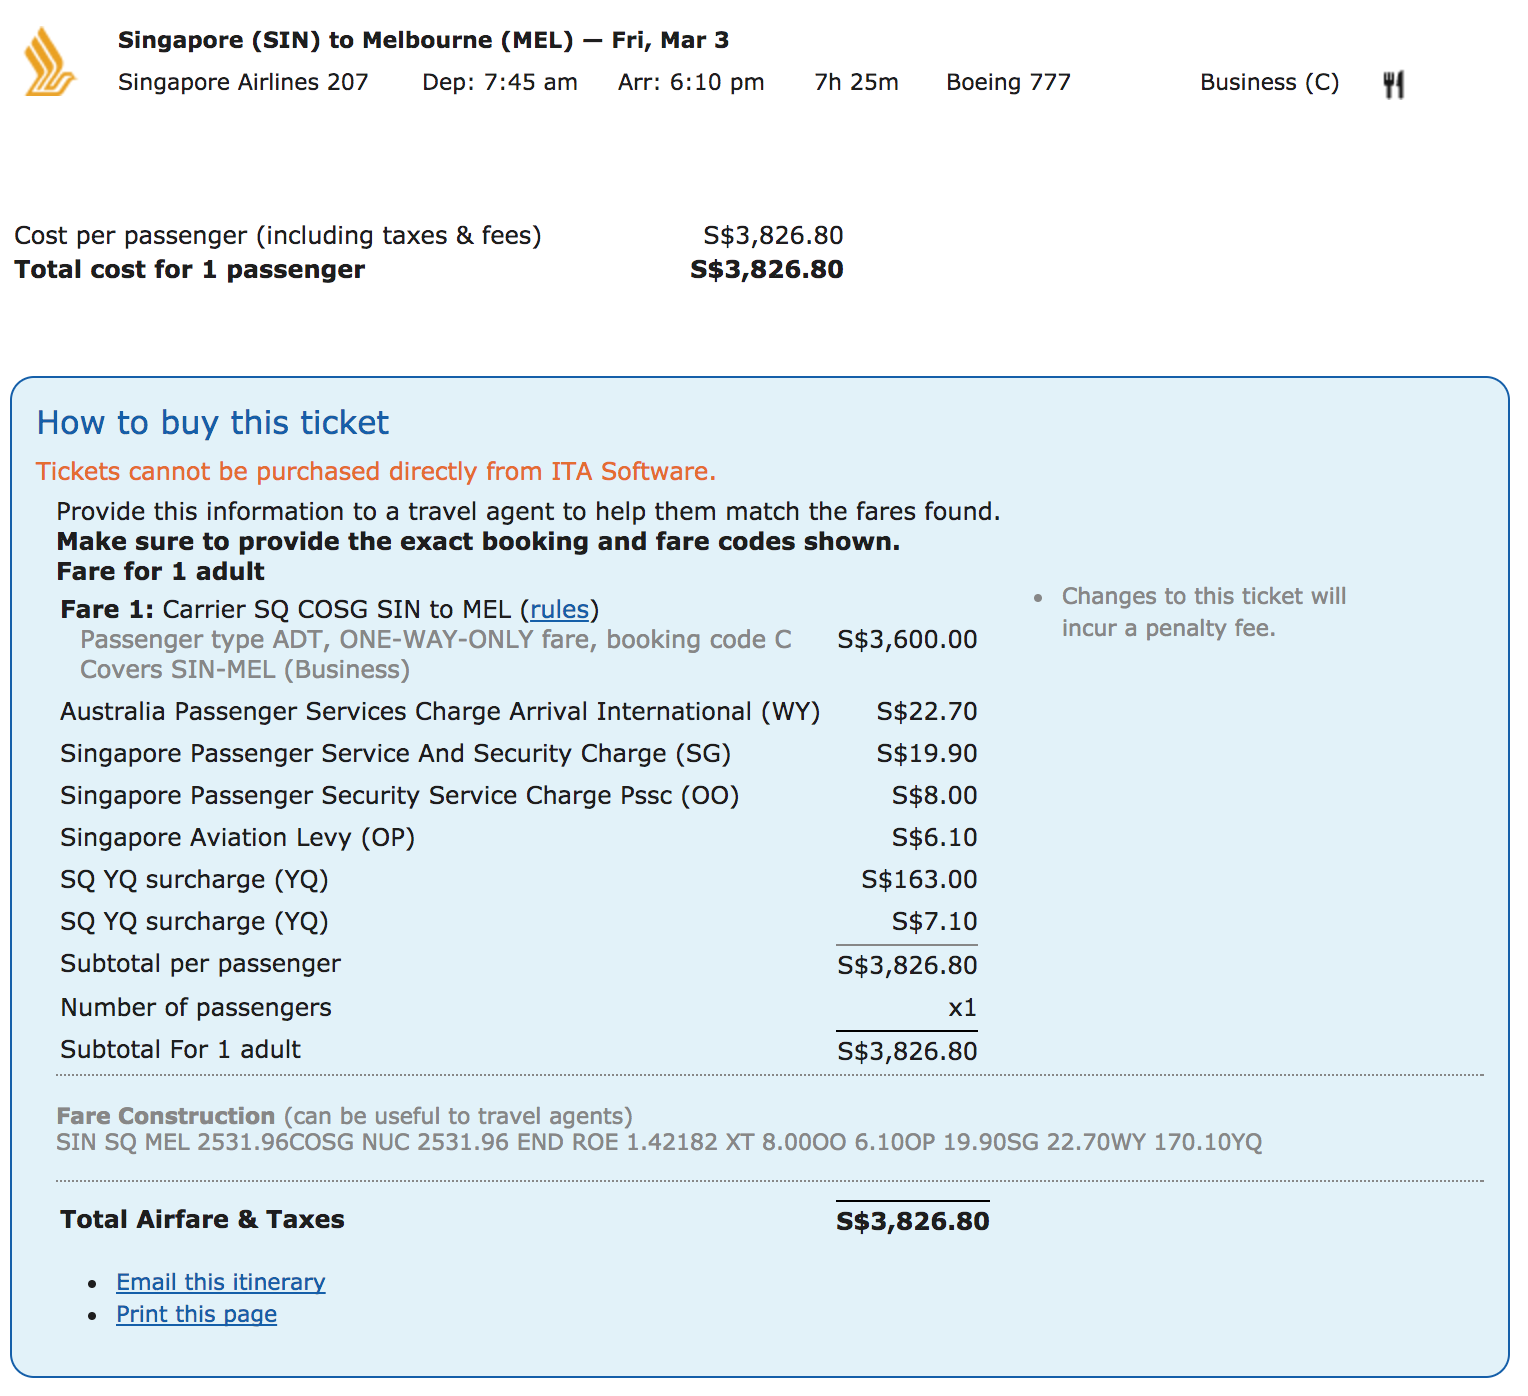 Finding the YQ Tax Component on Singapore Airlines Flights